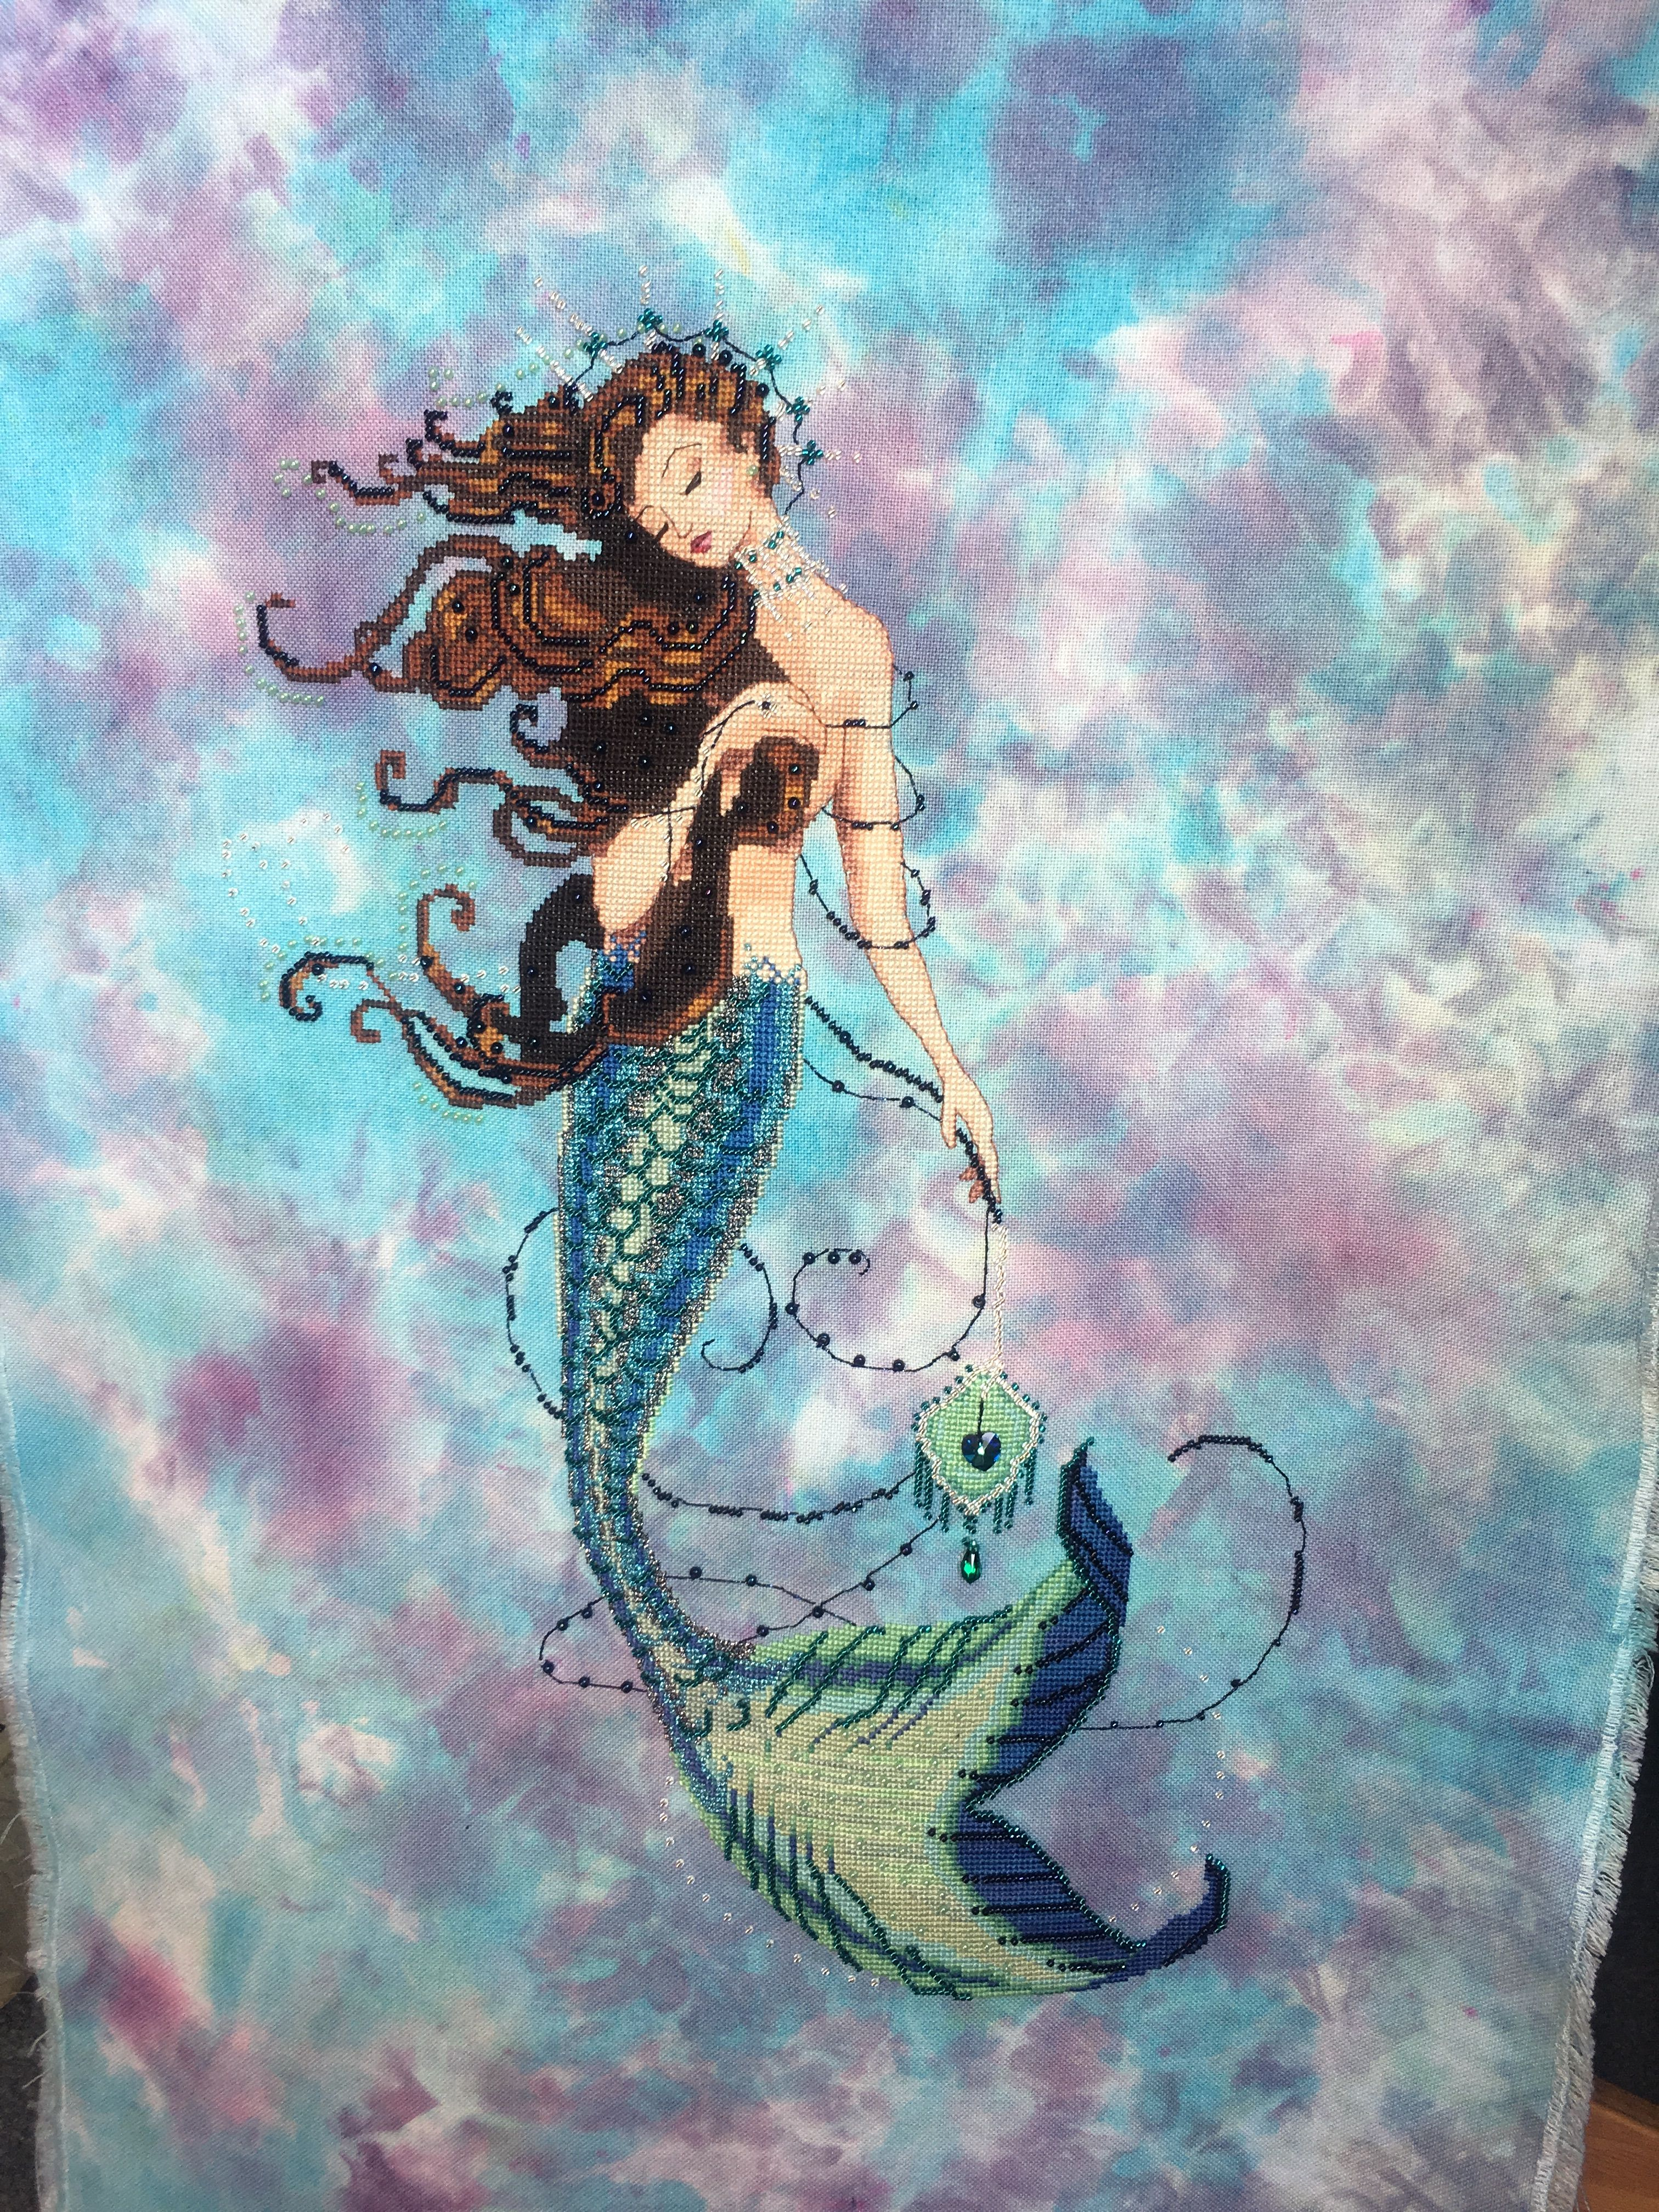 Fabric Beads Braid Silk Floss MD151 Mirabilia Renaissance Mermaid Kit Chart